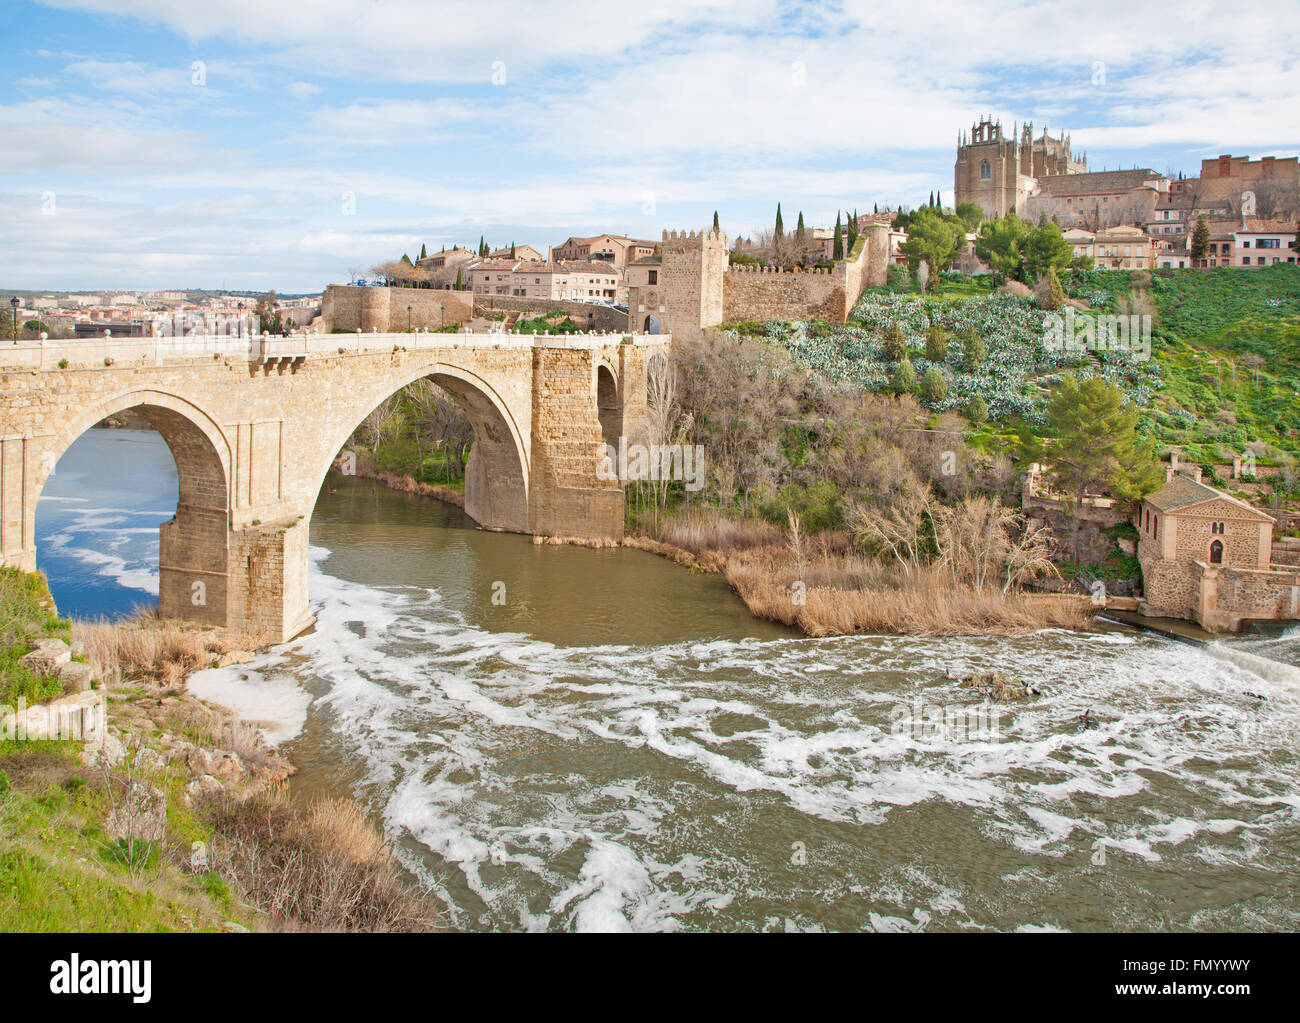 Toledo - Look to San Martin s bride or Puente de san Martin to Monastery of saint John of the King in morning light - Stock Image